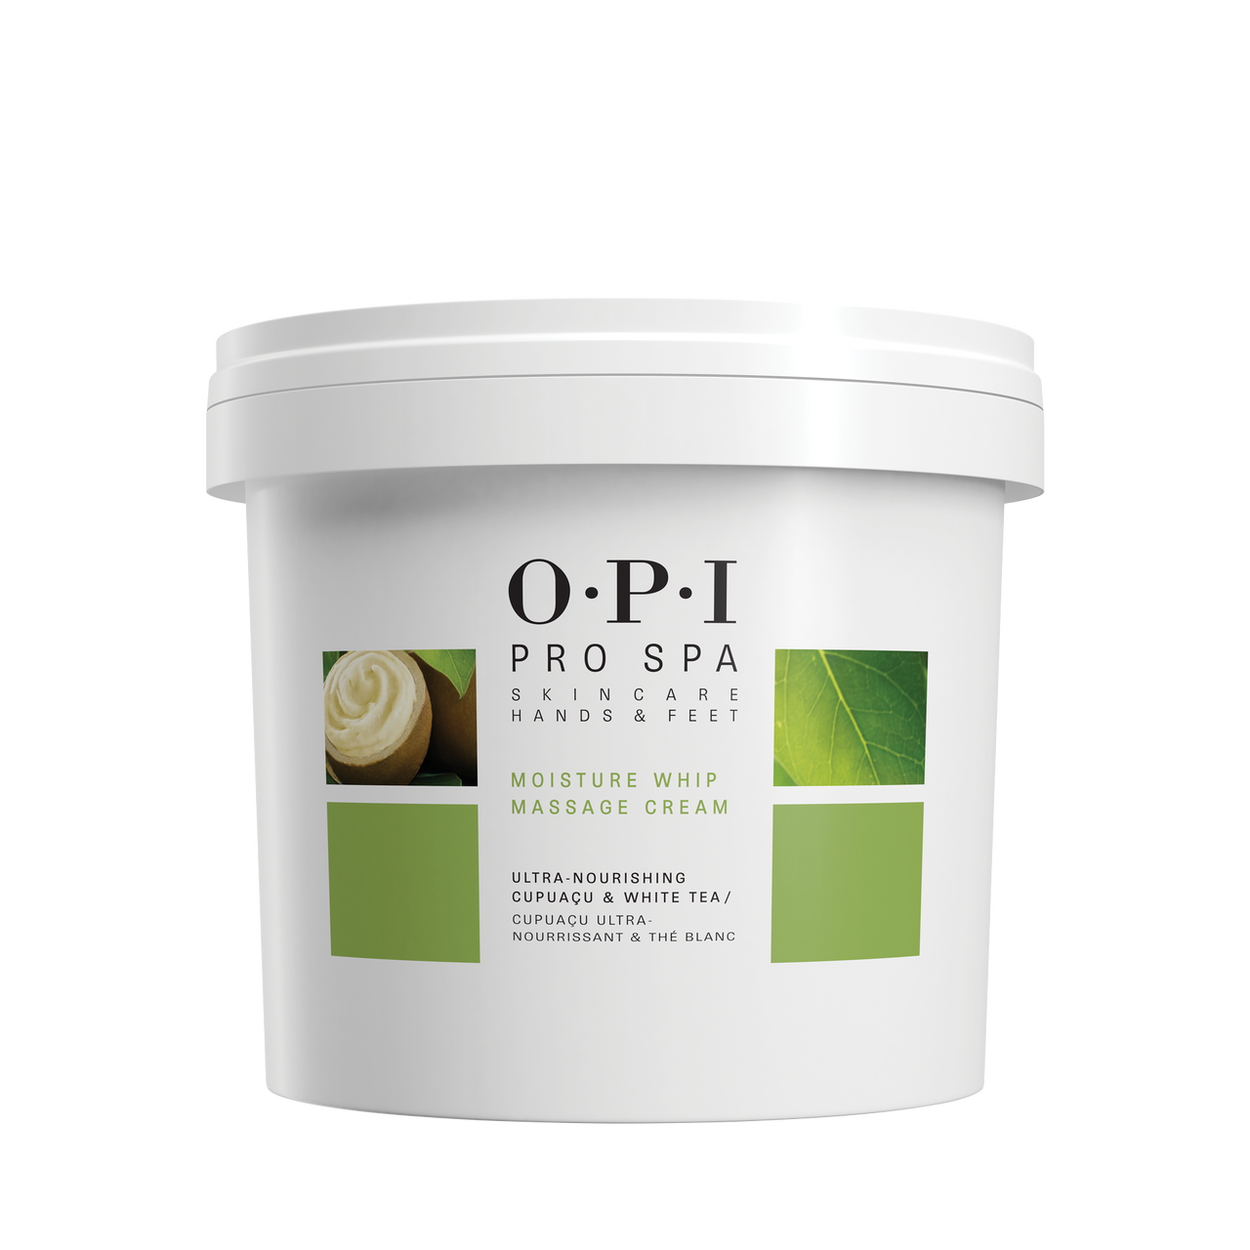 OPI ProSpa, #ASM23 - Moisture Whip Massage Cream 120oz